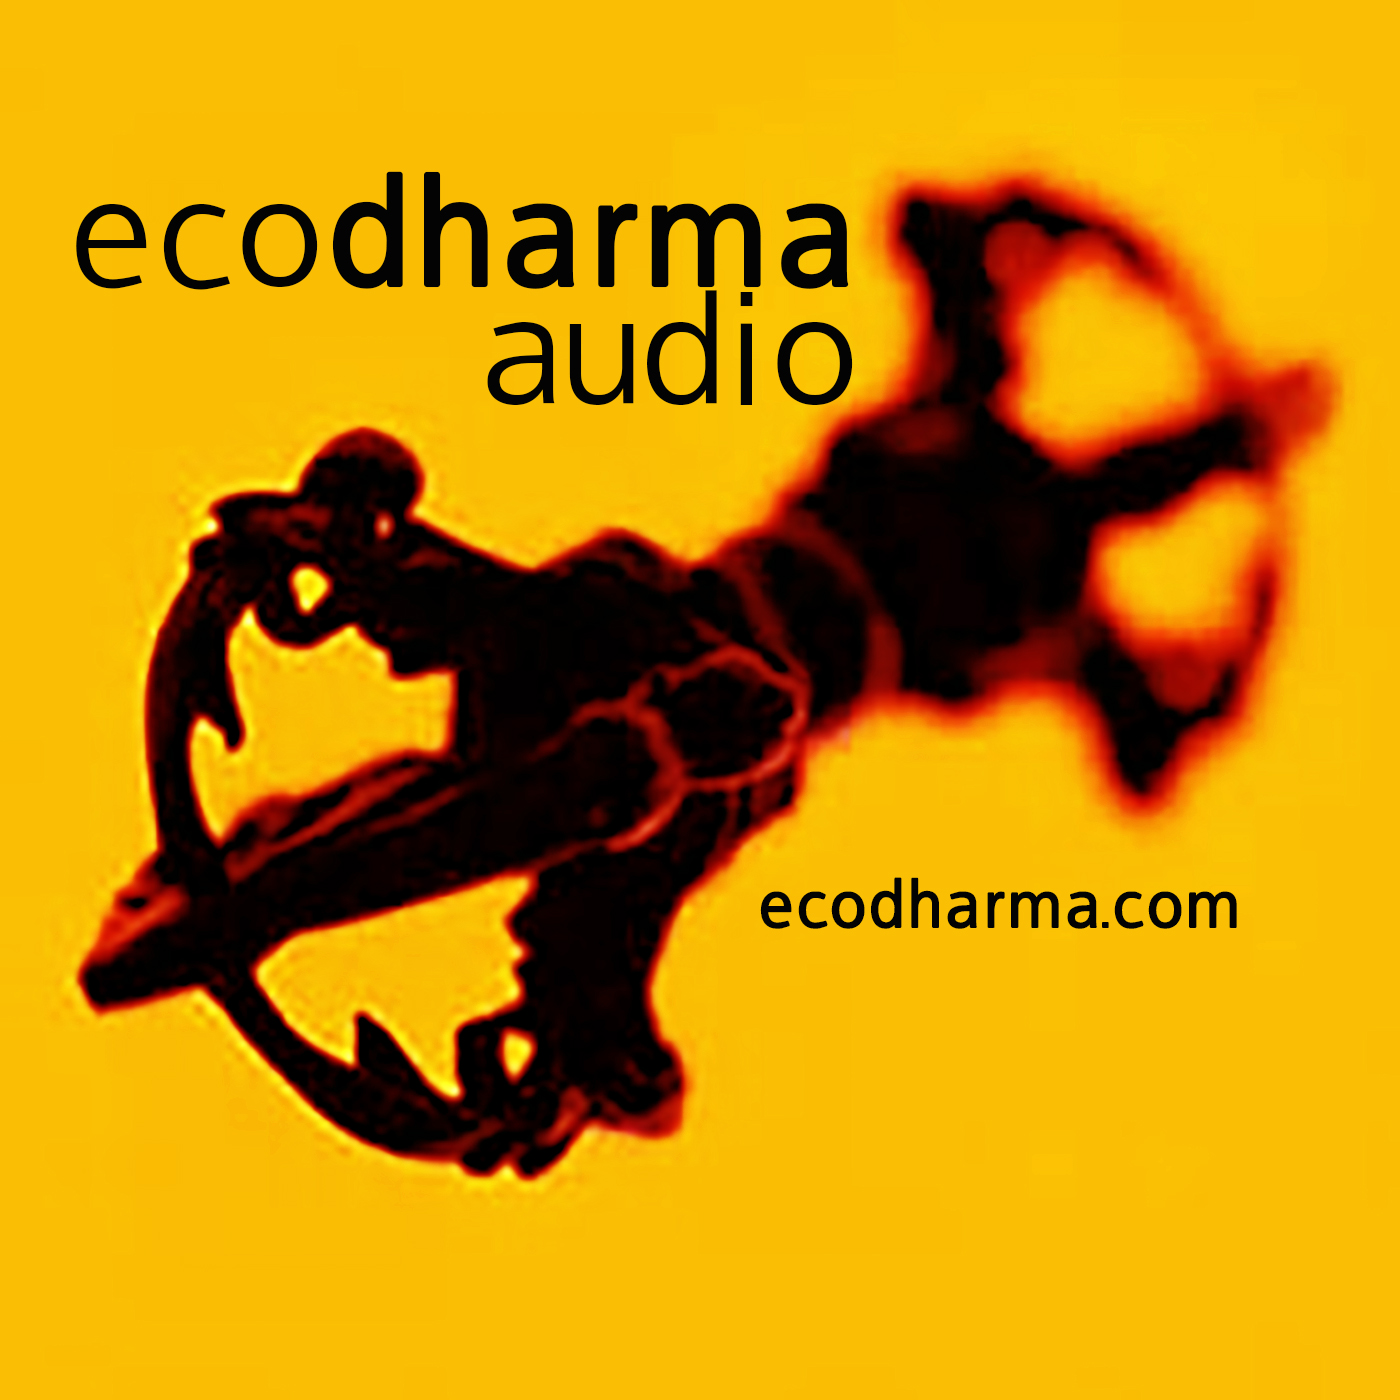 ecodharma audio